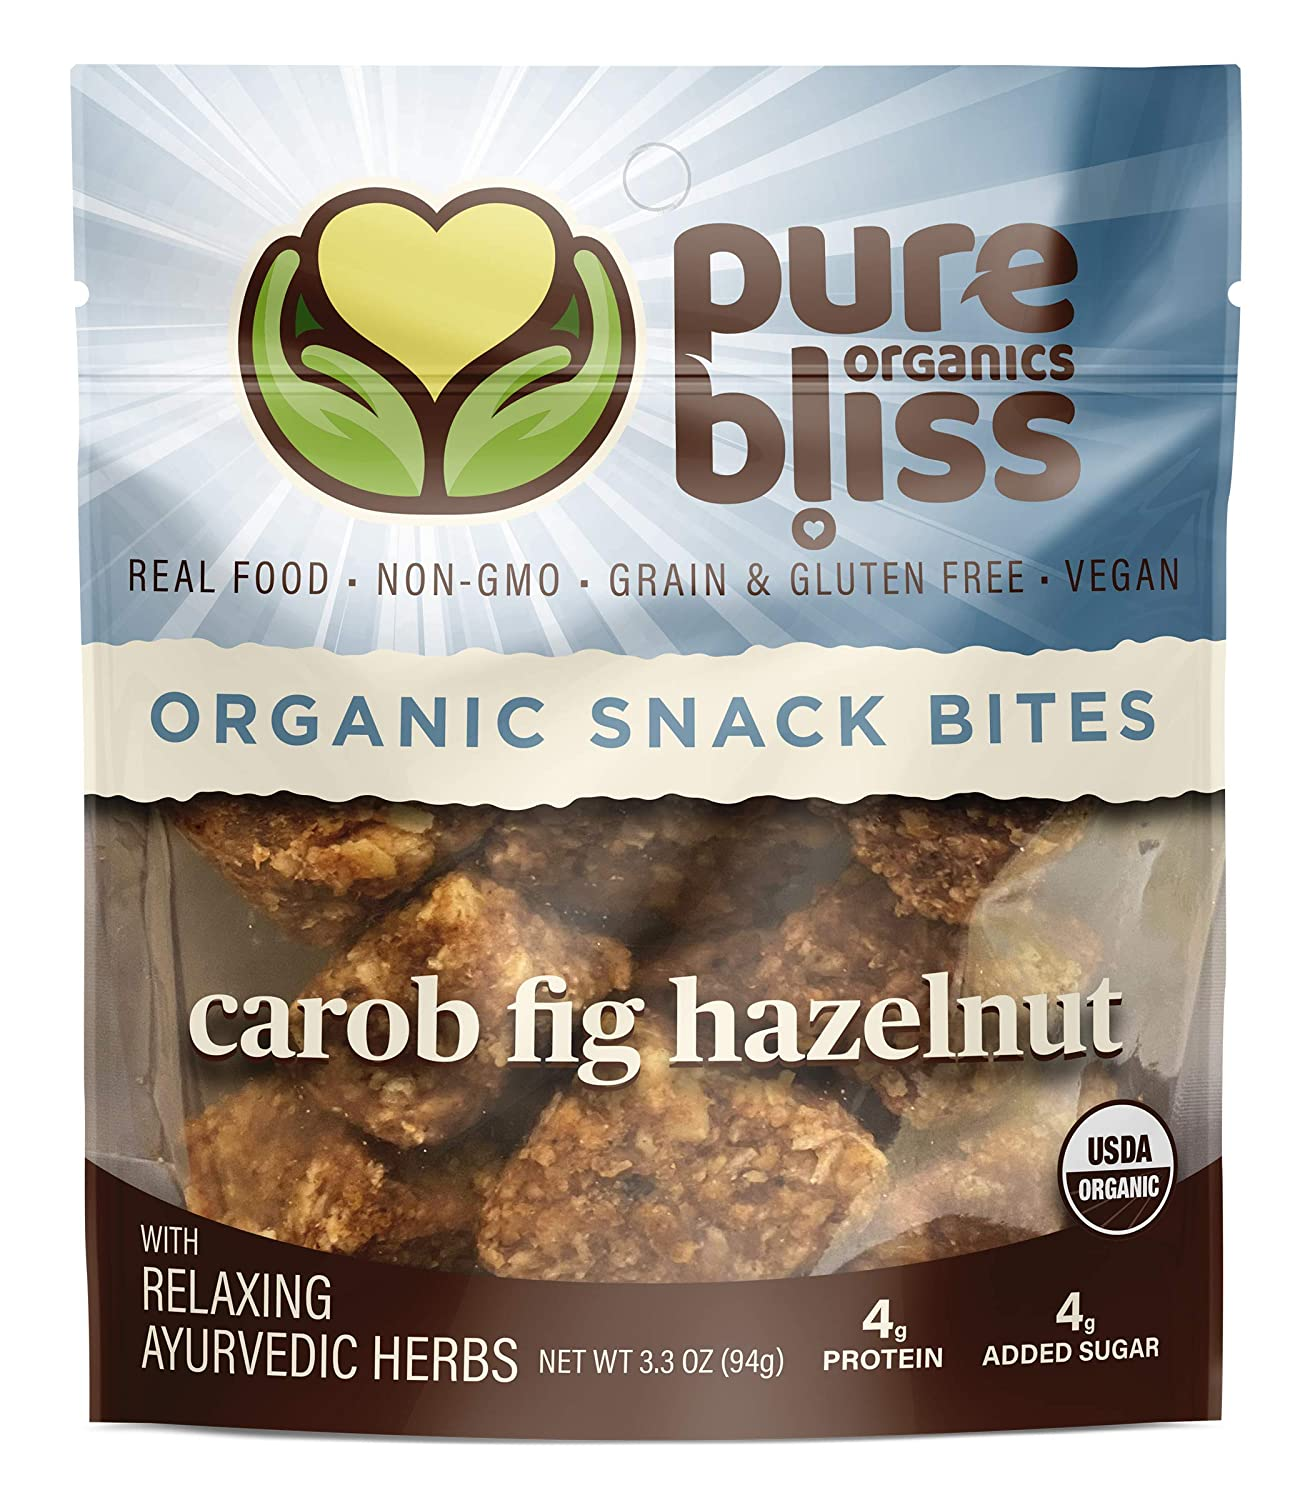 Pure Bliss Organics, Carob Fig Hazelnut Snack Bites, 3-Pack (3 x 3.3 oz Pouches), Certified Organic Real Food Snack Bites, Vegan, Gluten Free, non-GMO, With Relaxing AYURVEDIC Herbs